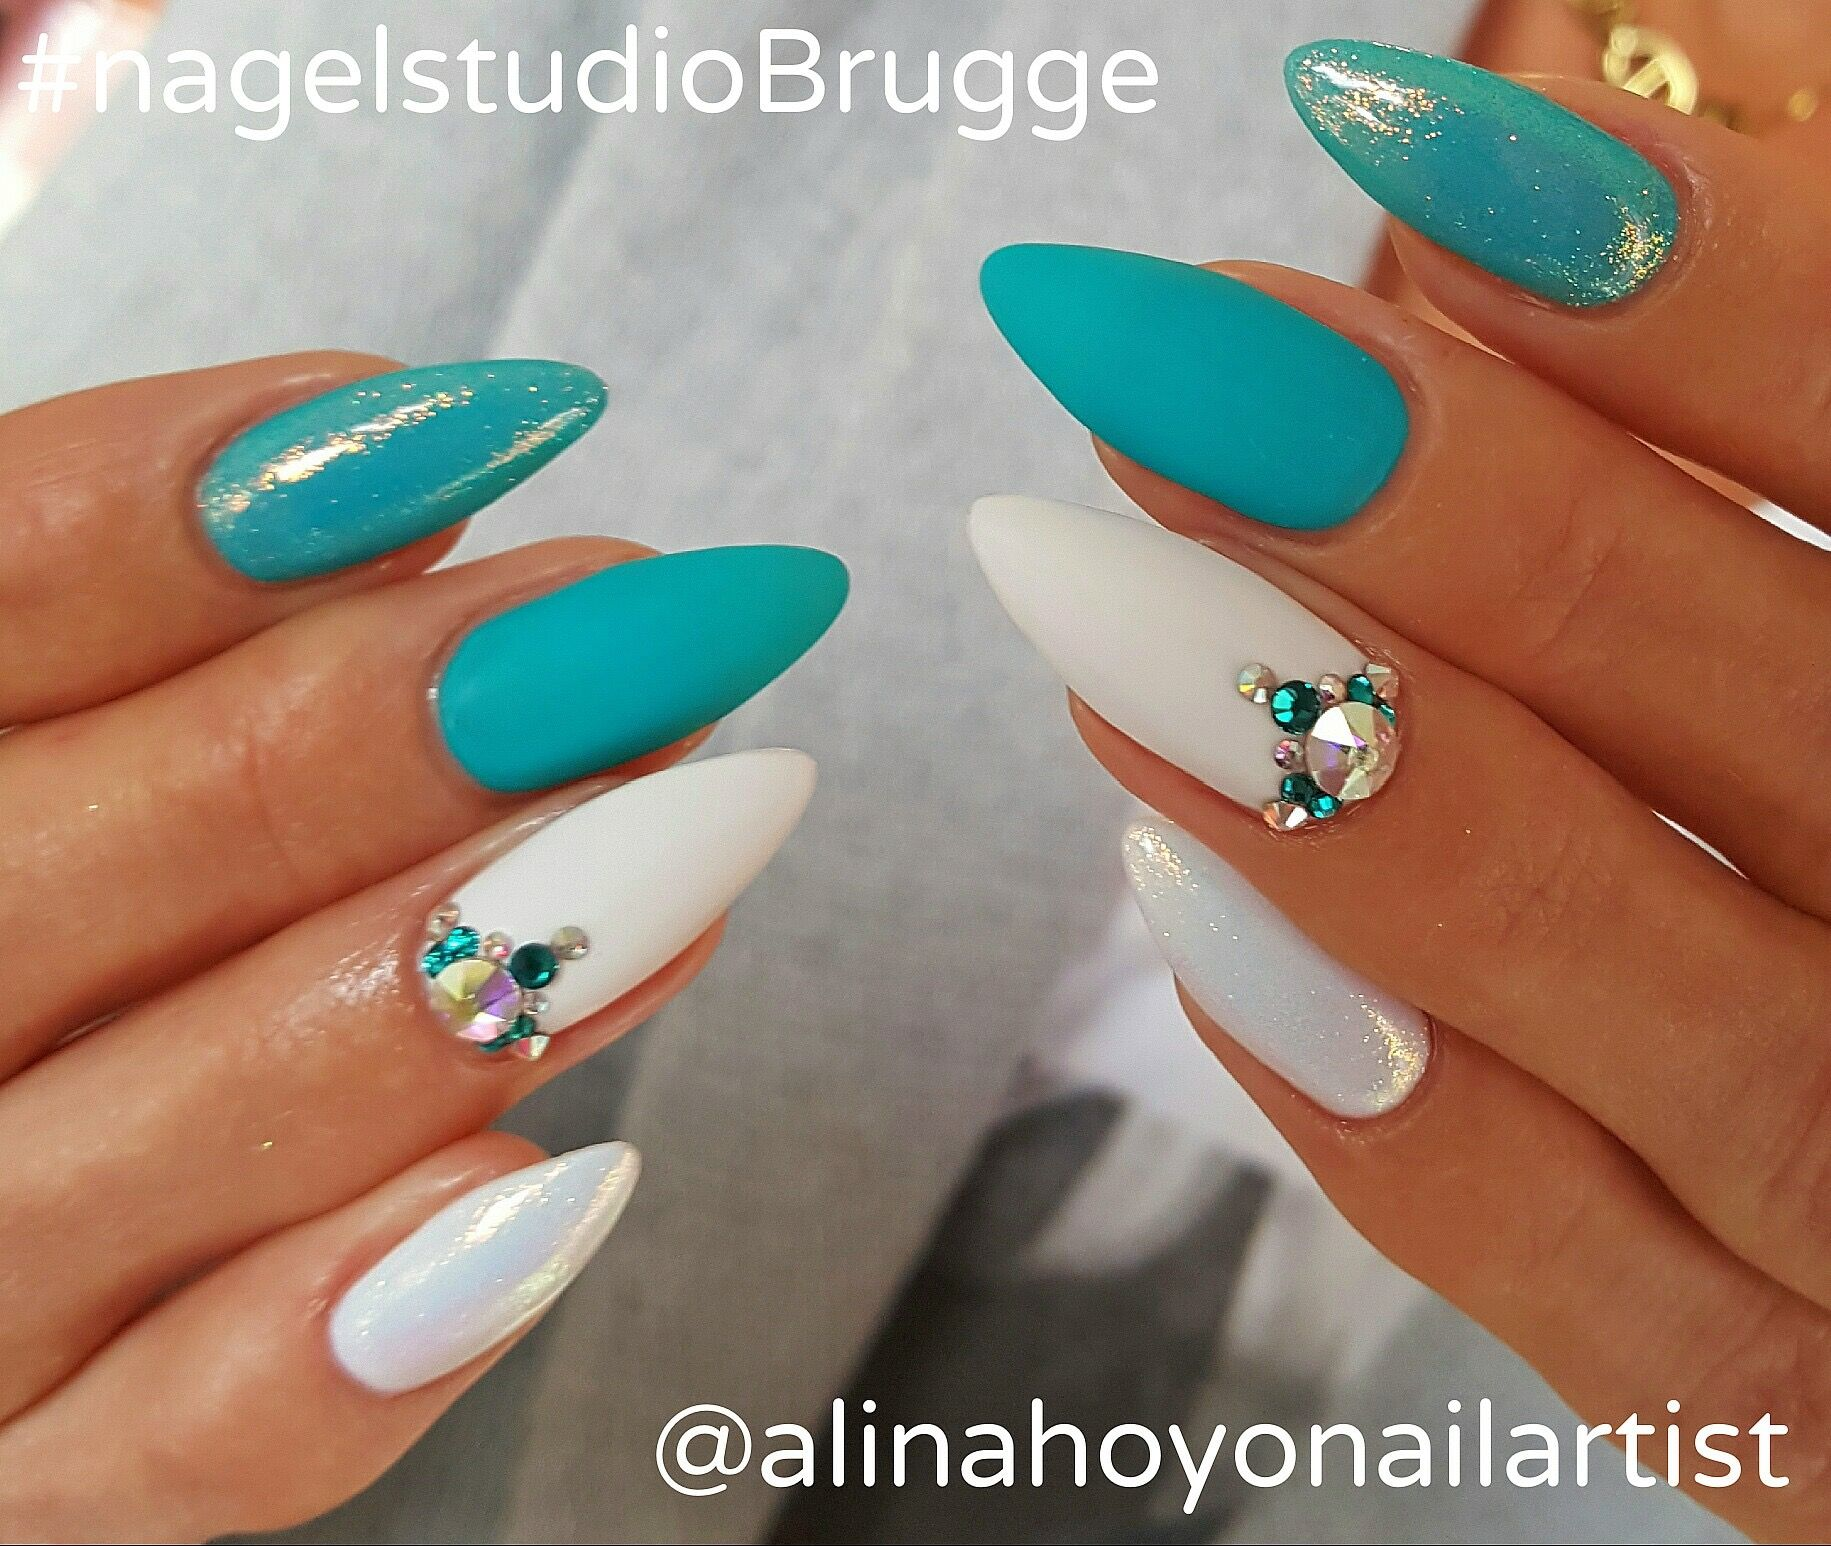 Pin by lori vasso on nails | Pinterest | Manicure, Crazy nails and ...